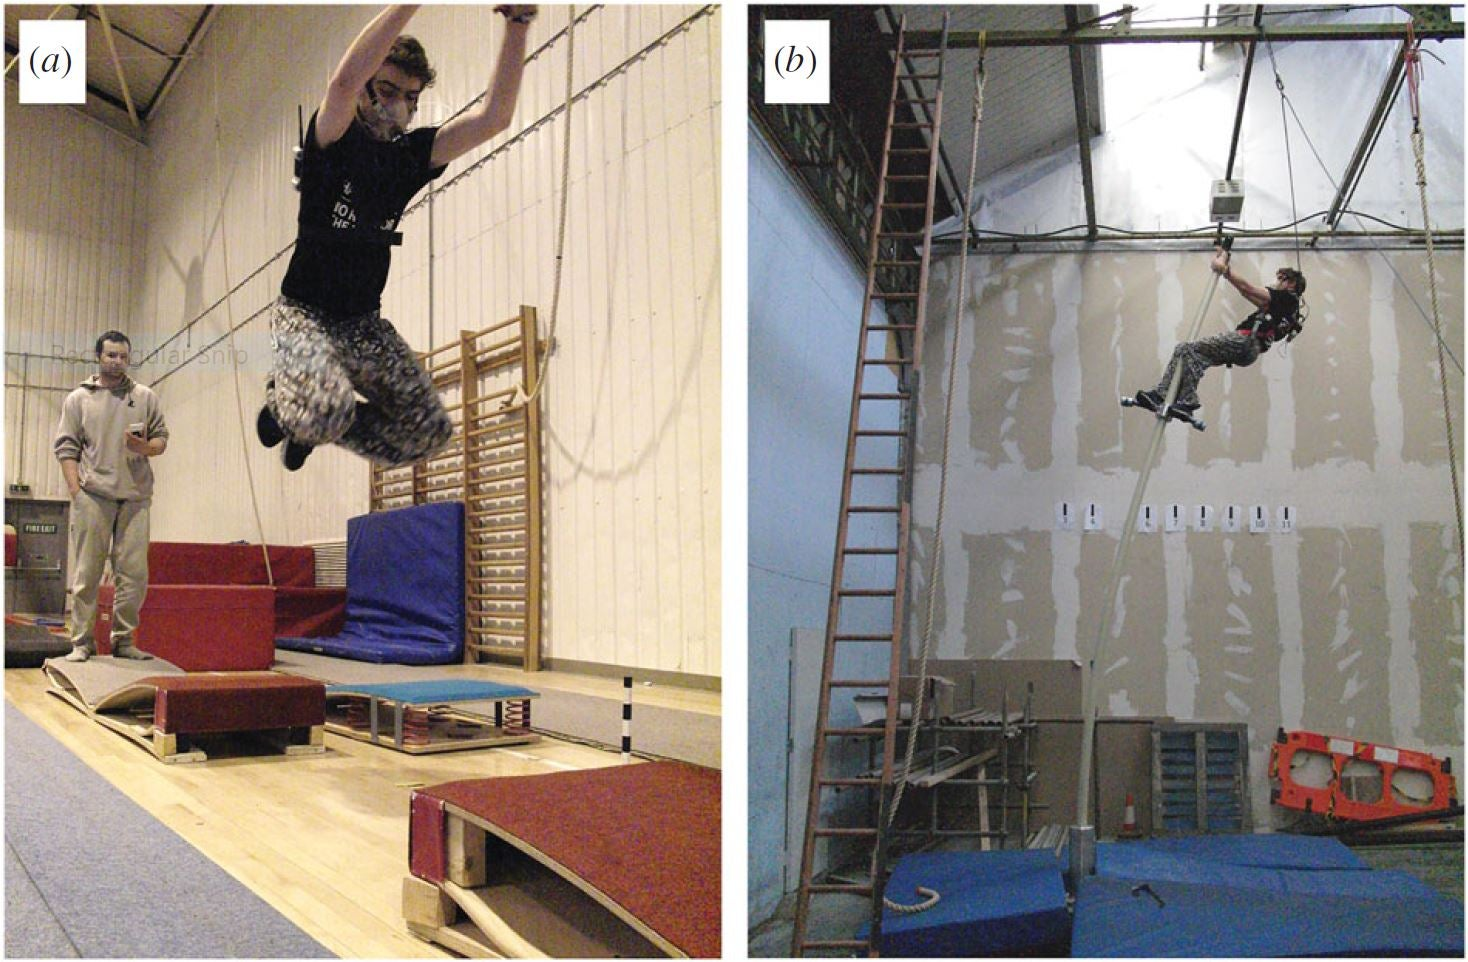 Parkour athletes act like orangutans for science